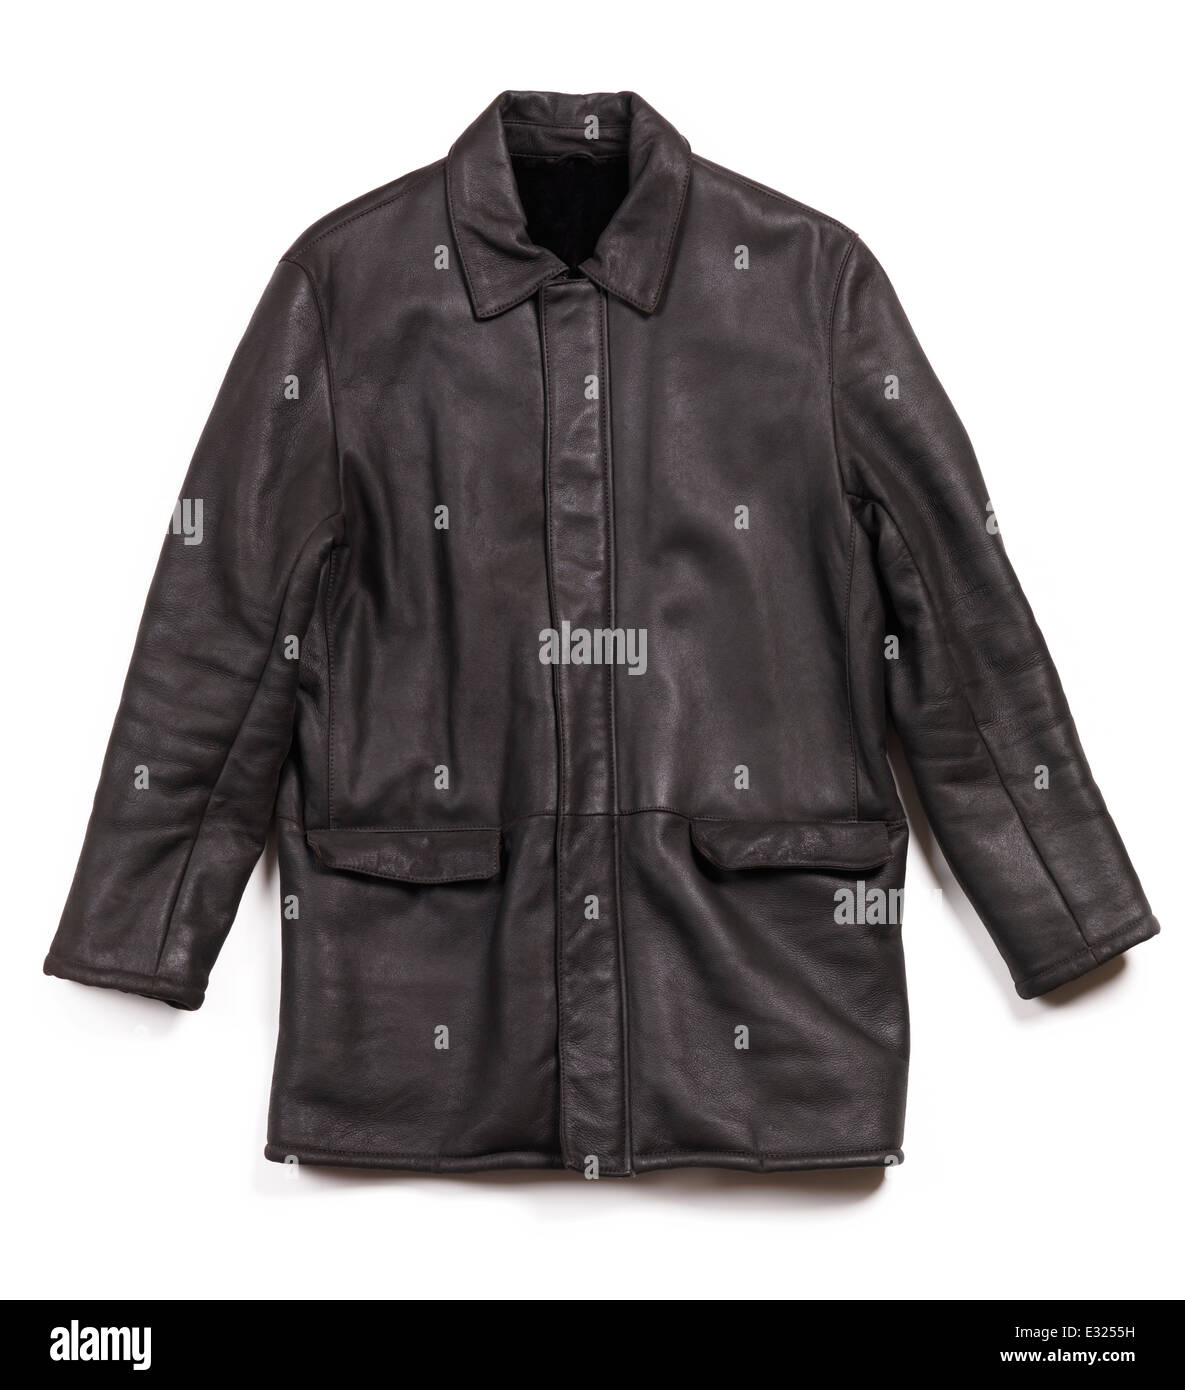 Sheepskin mens leather jacket coat isolated on white background - Stock Image